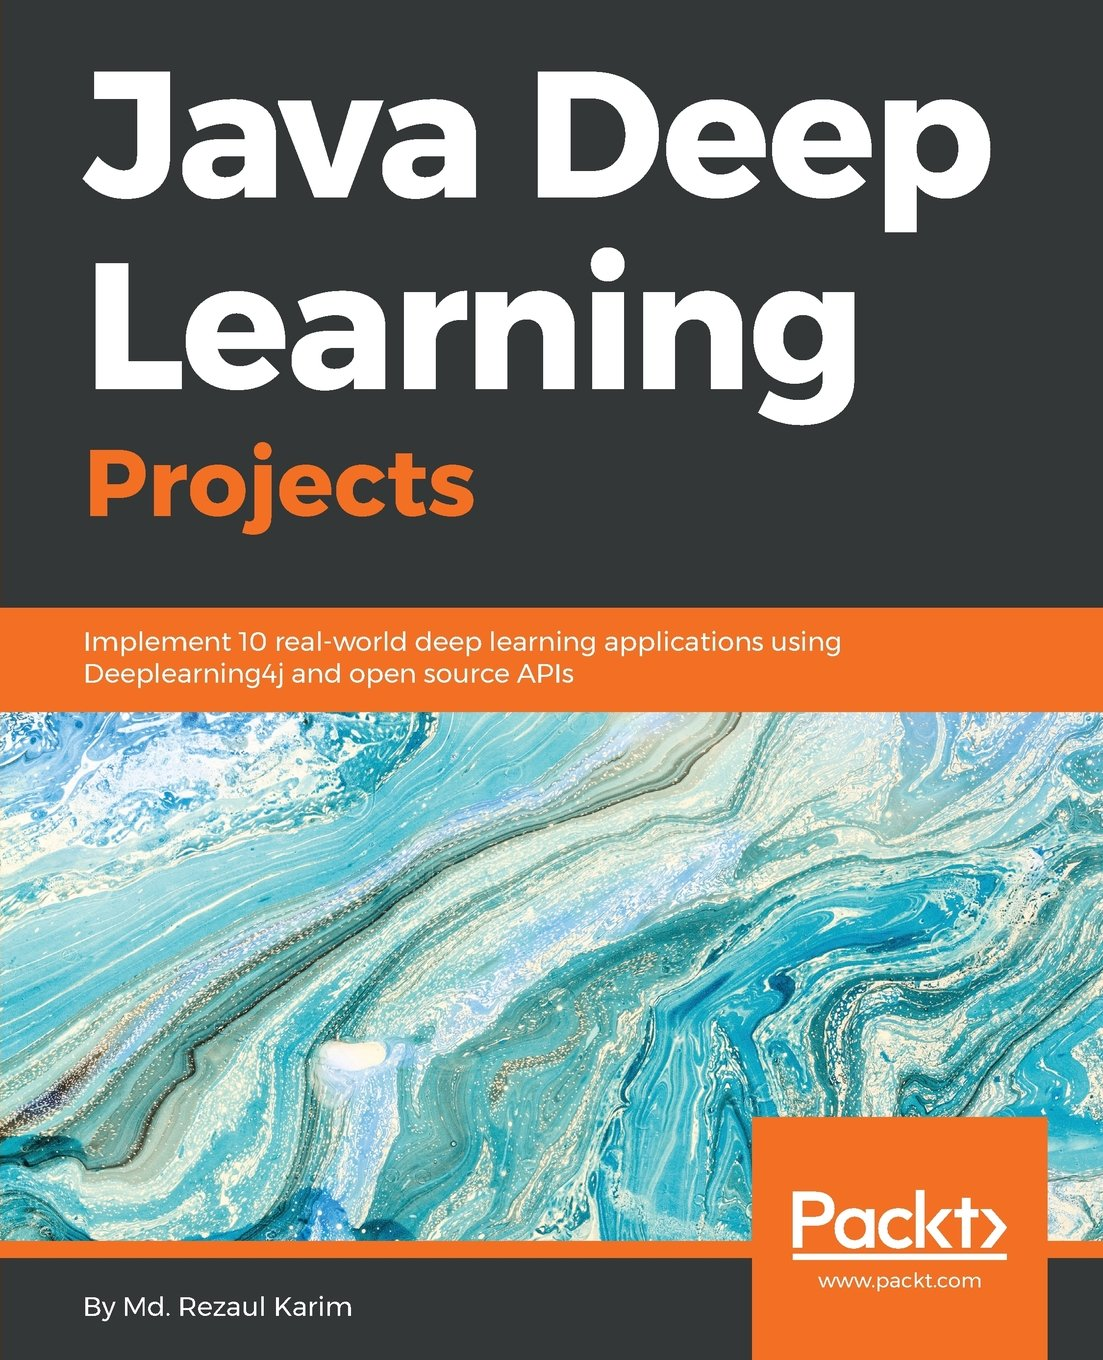 Java Deep Learning Projects: Implement 10 real-world deep